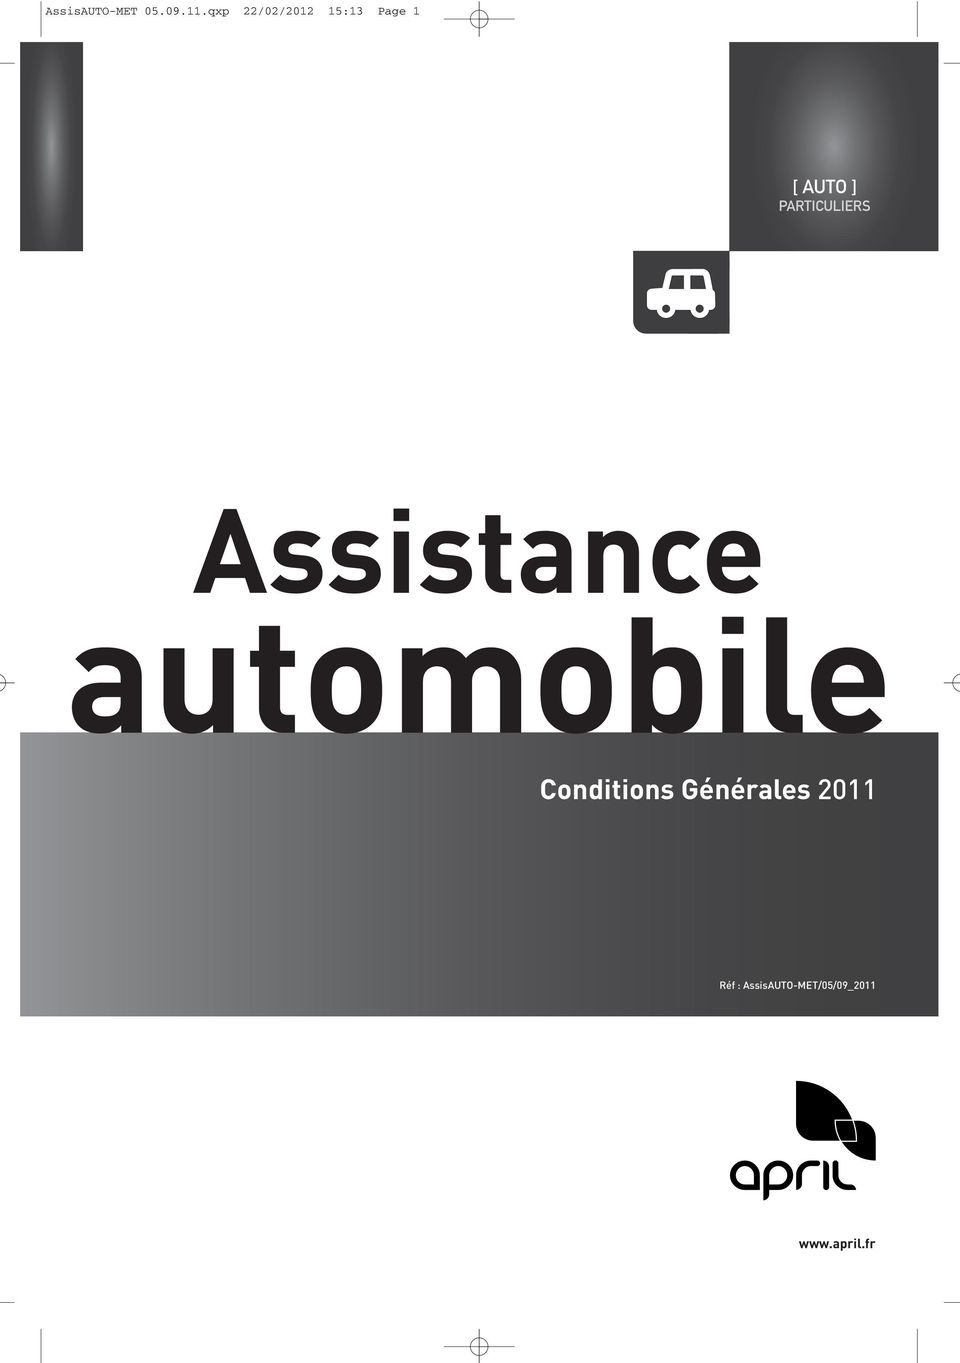 PARTICULIERS Assistance automobile